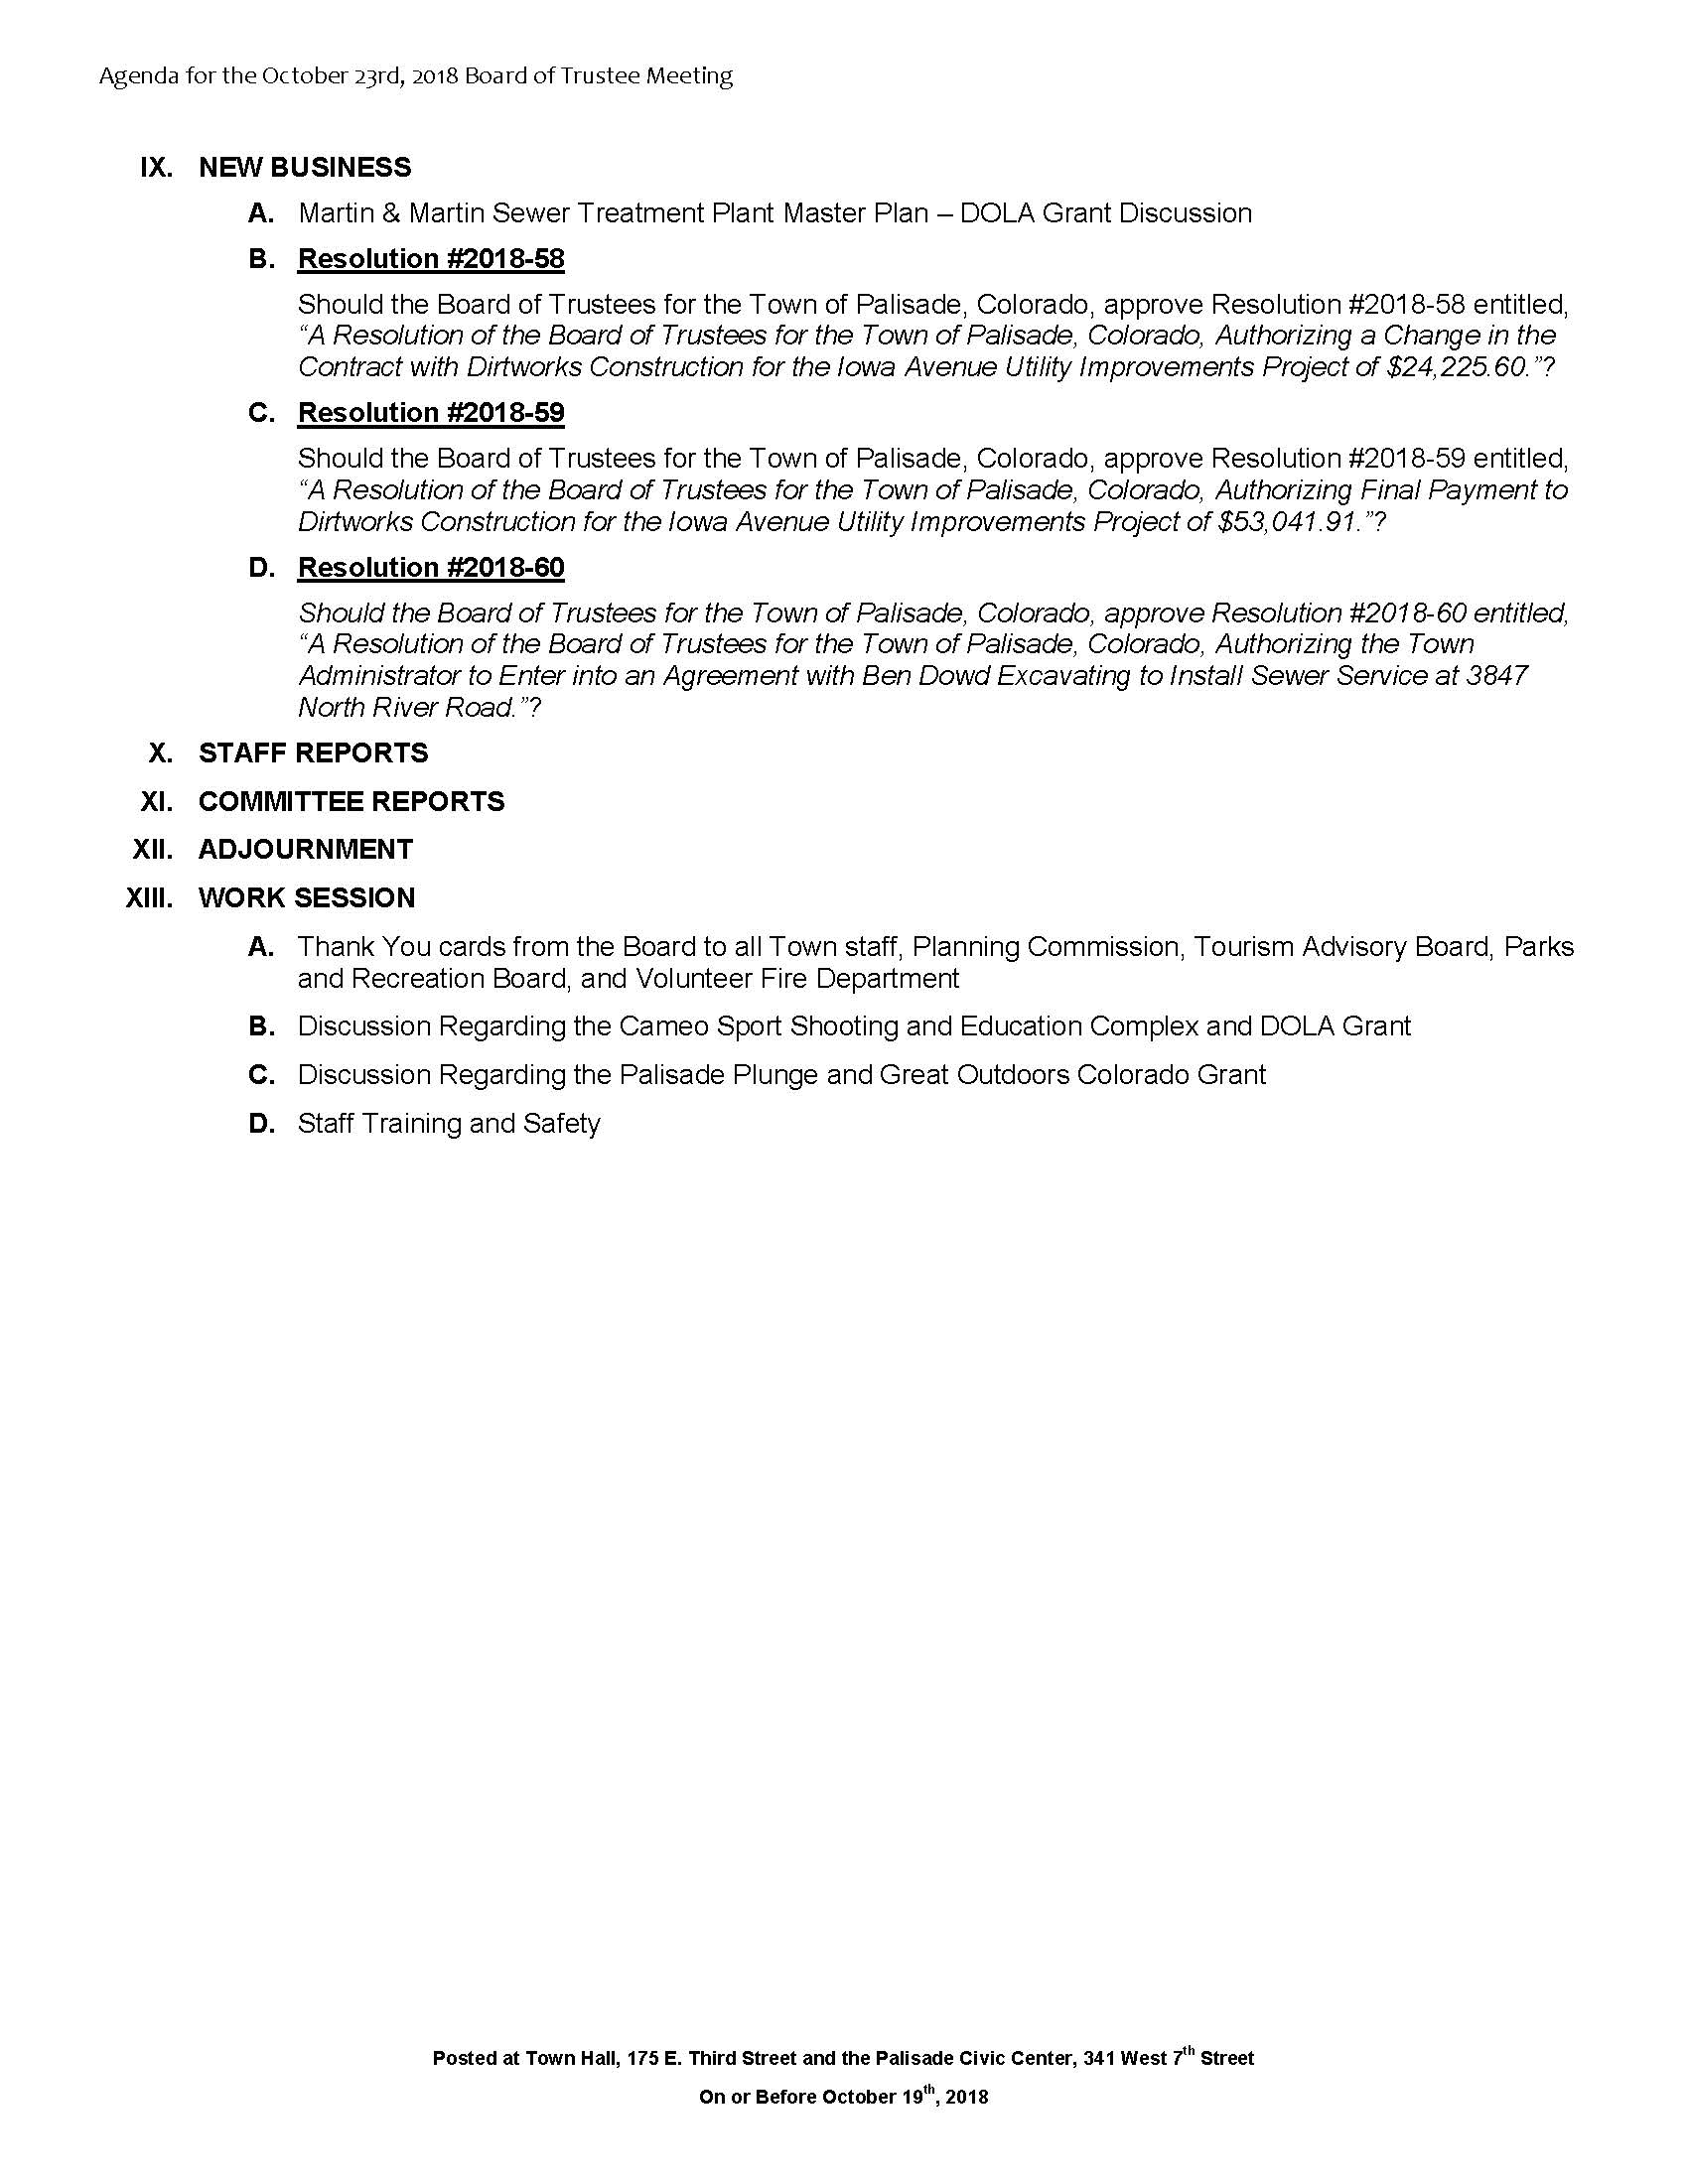 October 23rd 2018 Board Meeting Agenda Page 2